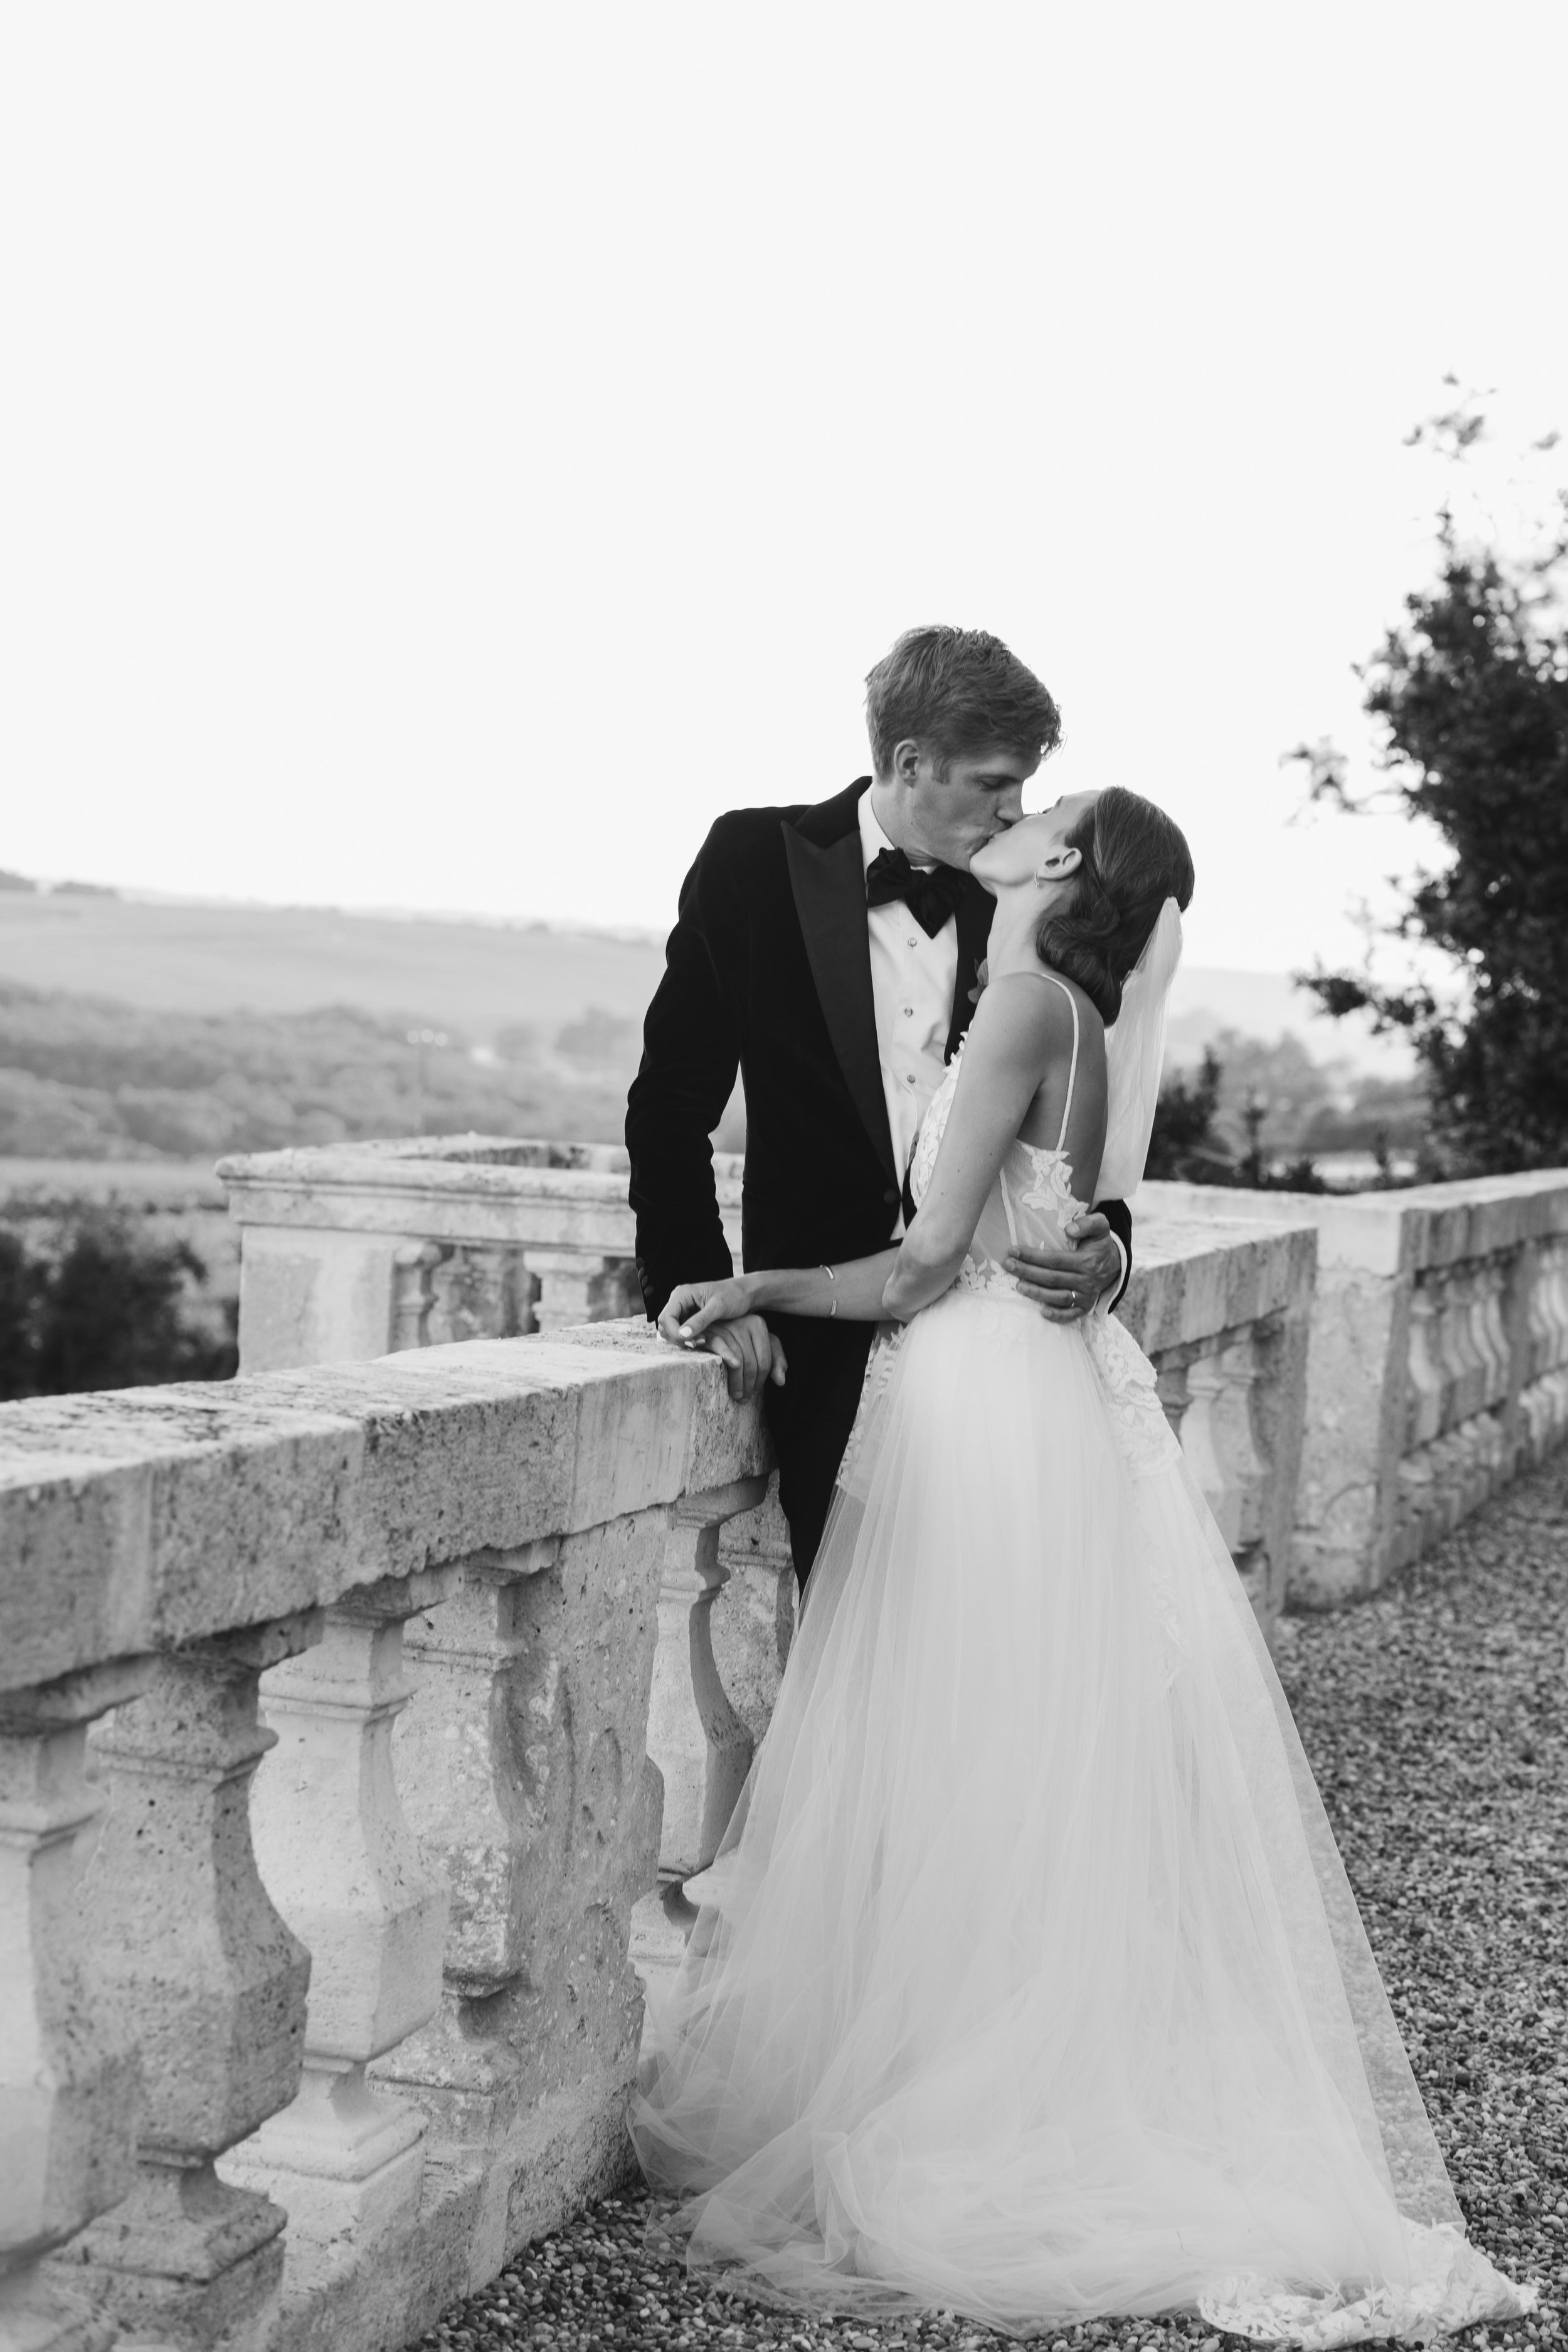 Steph Max South of France Wedding lr-904.jpg